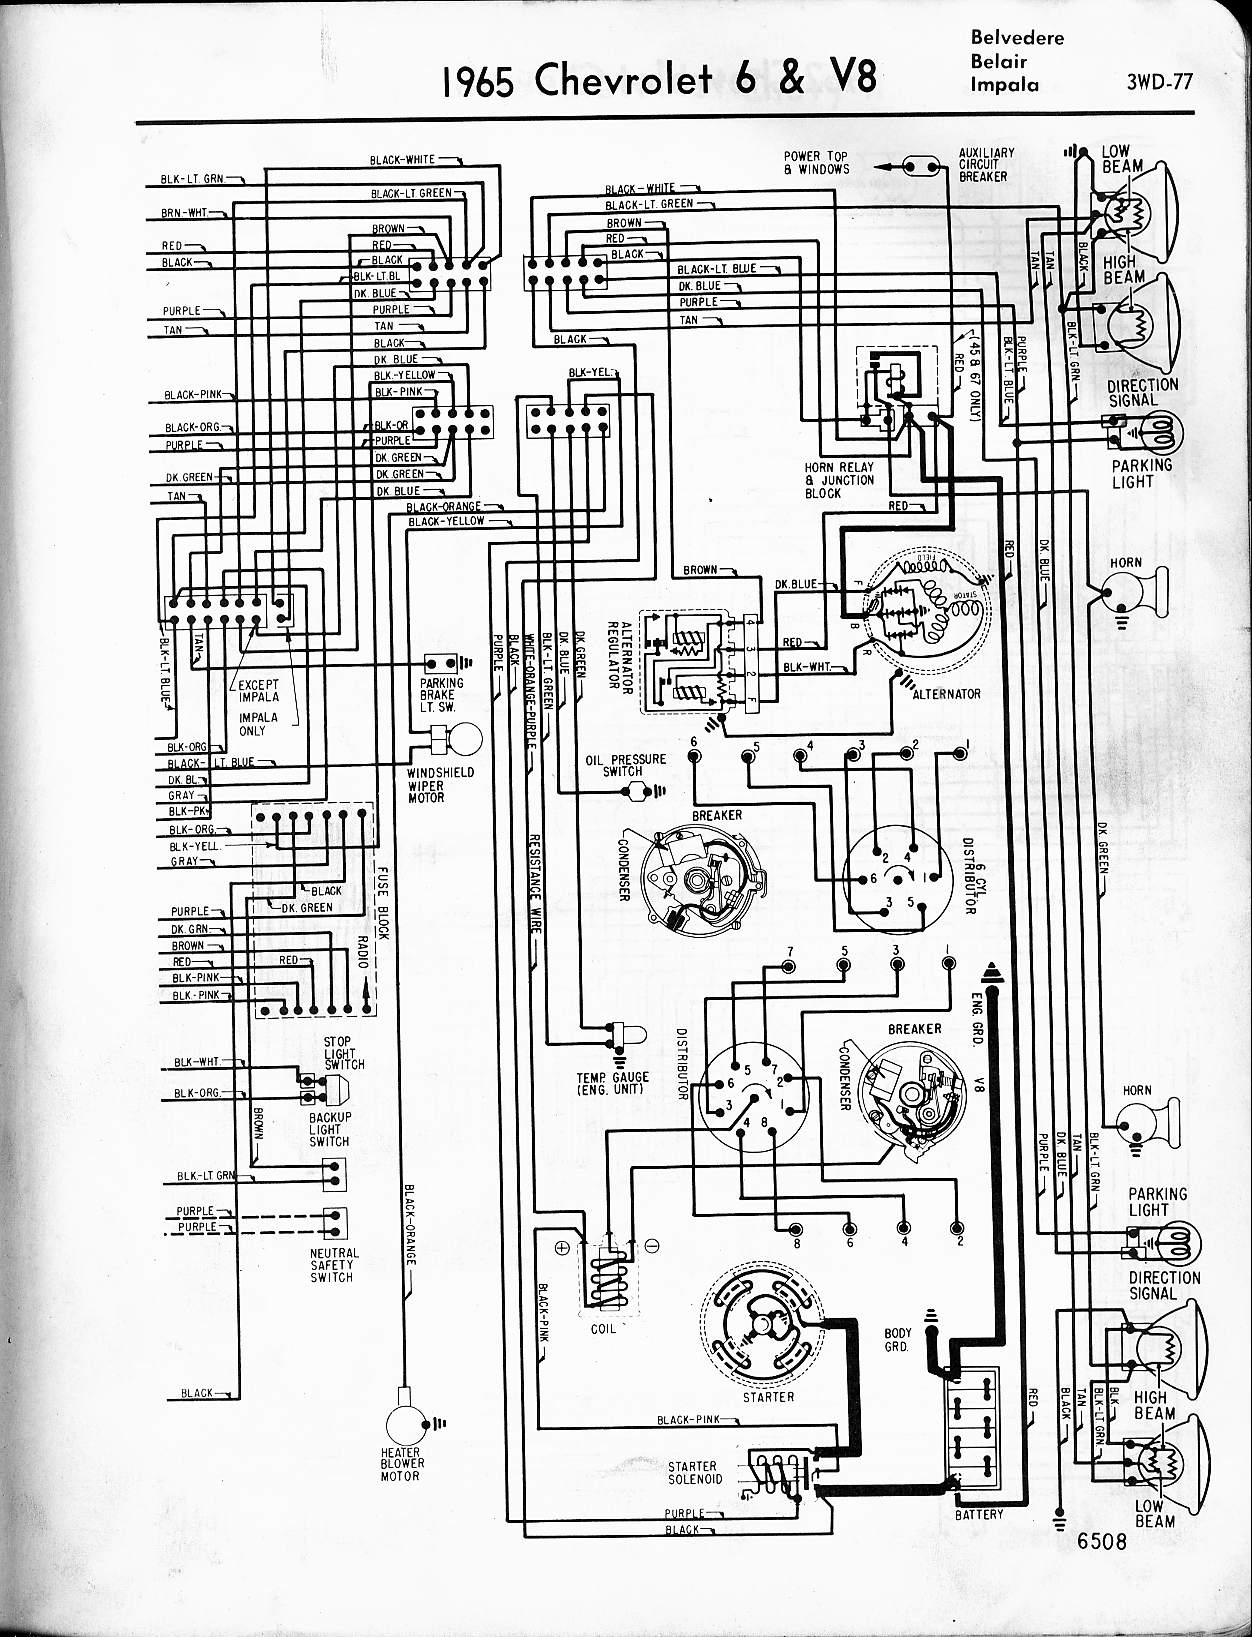 MWireChev65_3WD 077 chevy diagrams 1965 chevy truck turn signal wiring diagram at reclaimingppi.co